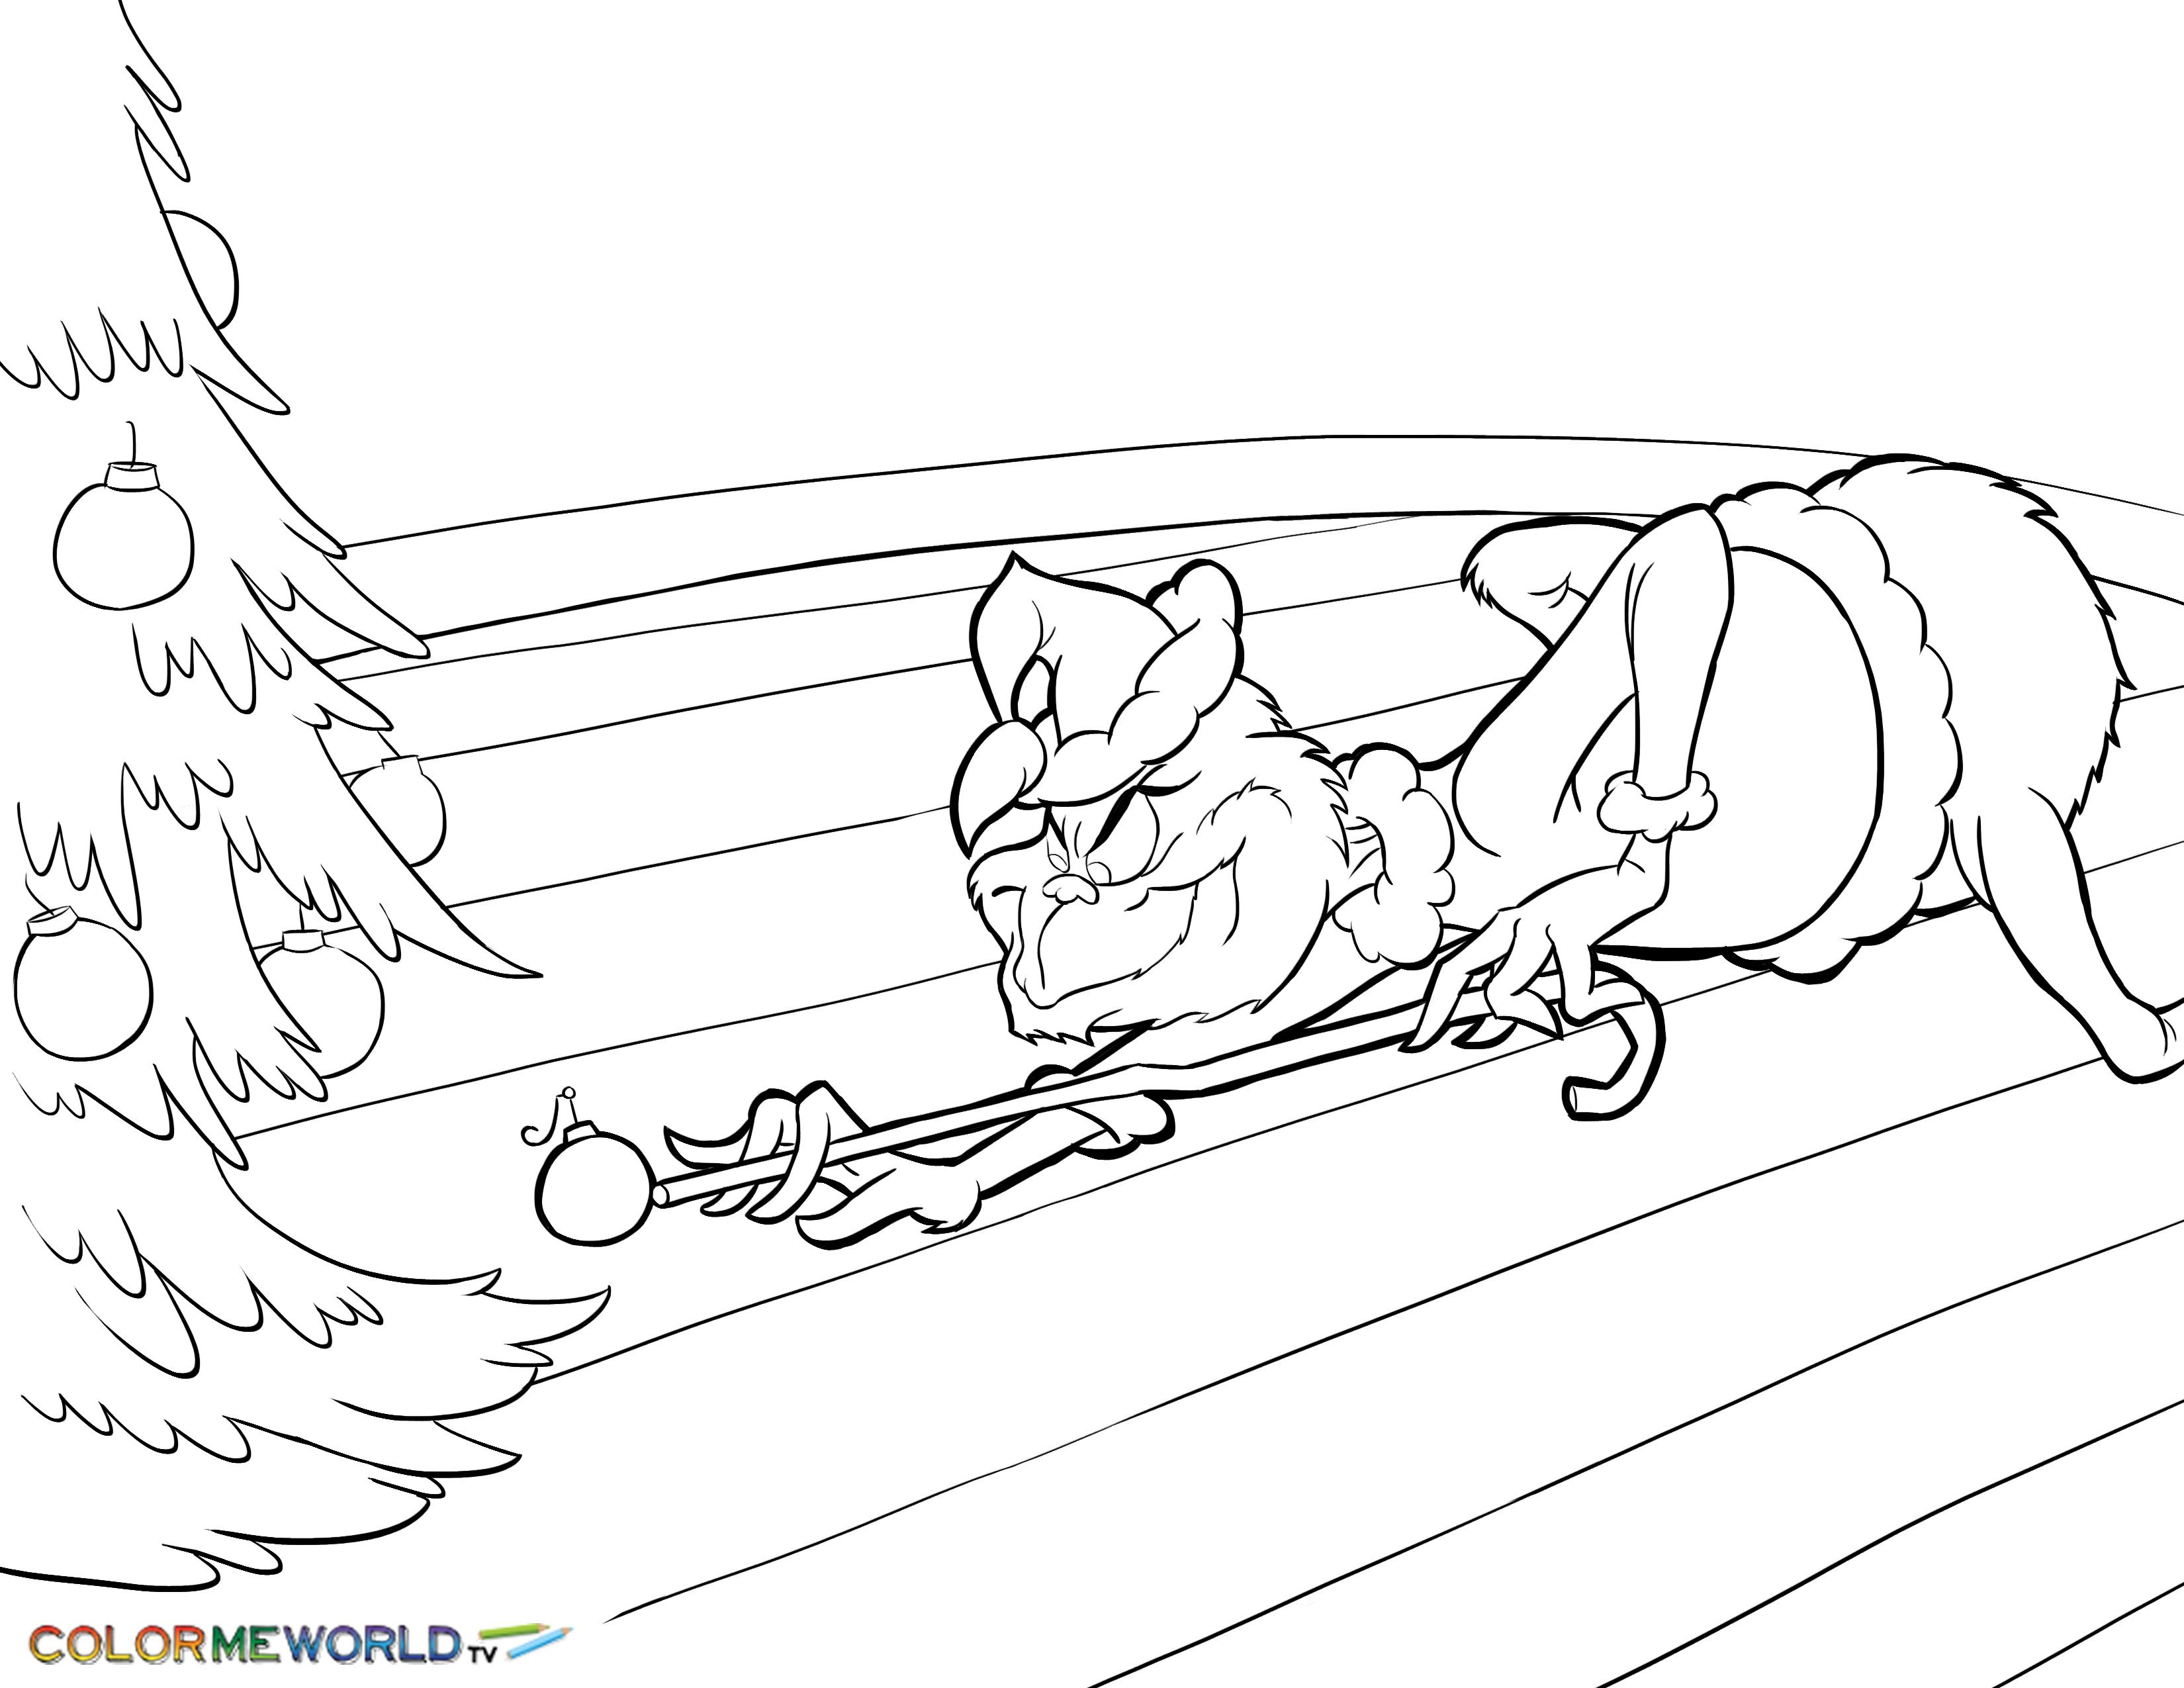 How The Grinch Stole Christmas Coloring Pages Printable